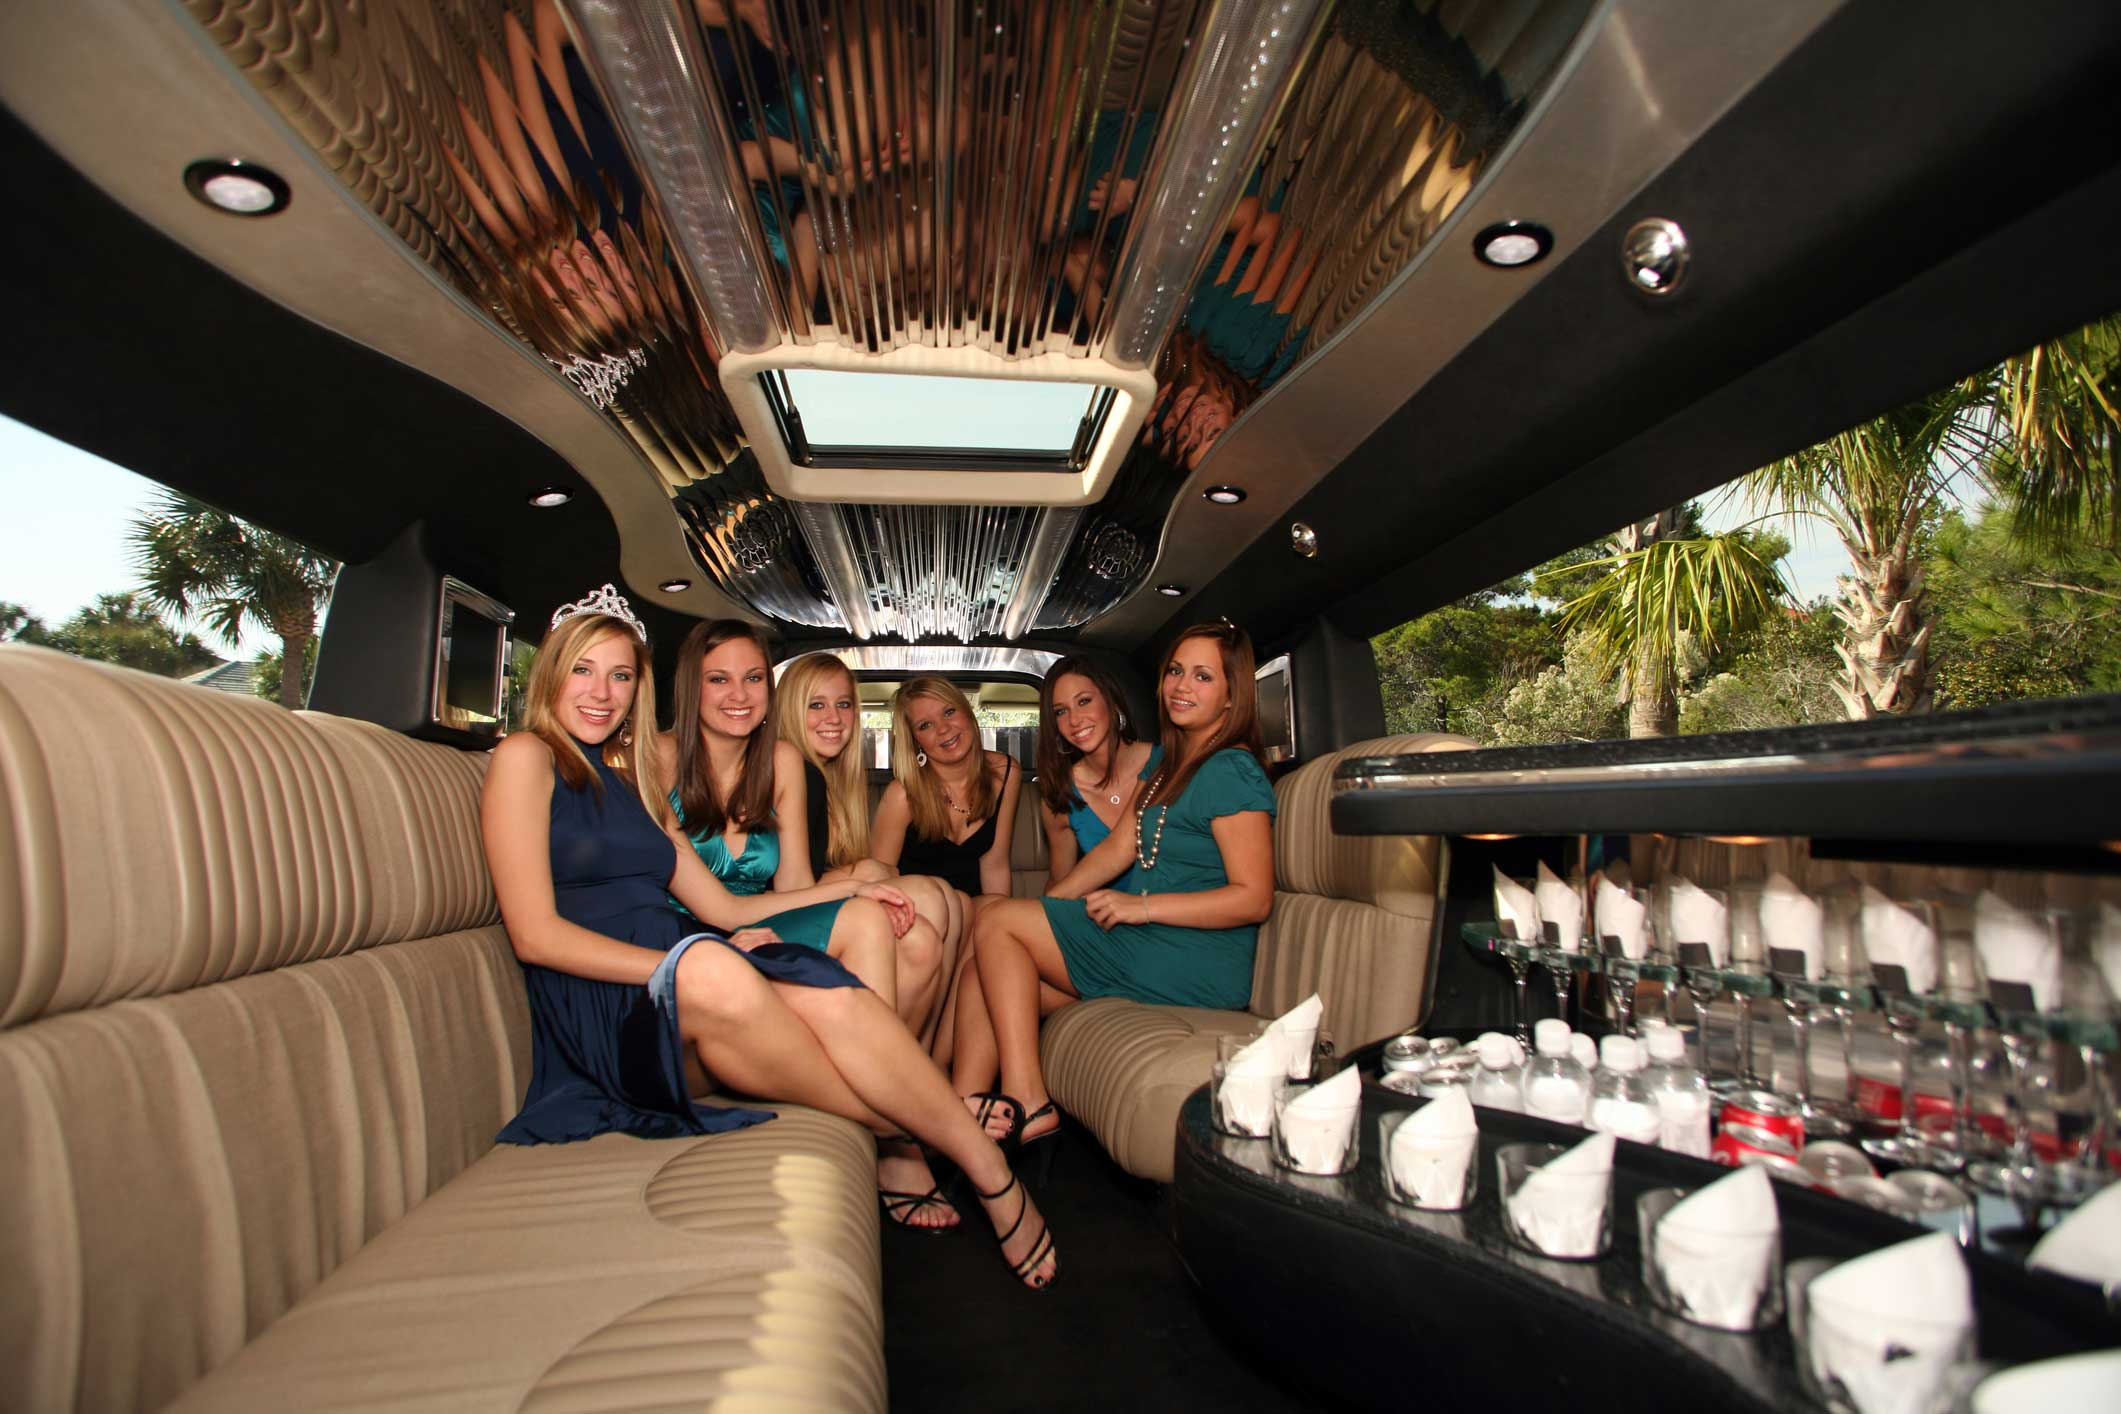 Prom limousine service, providing limo transportation for many special occasions